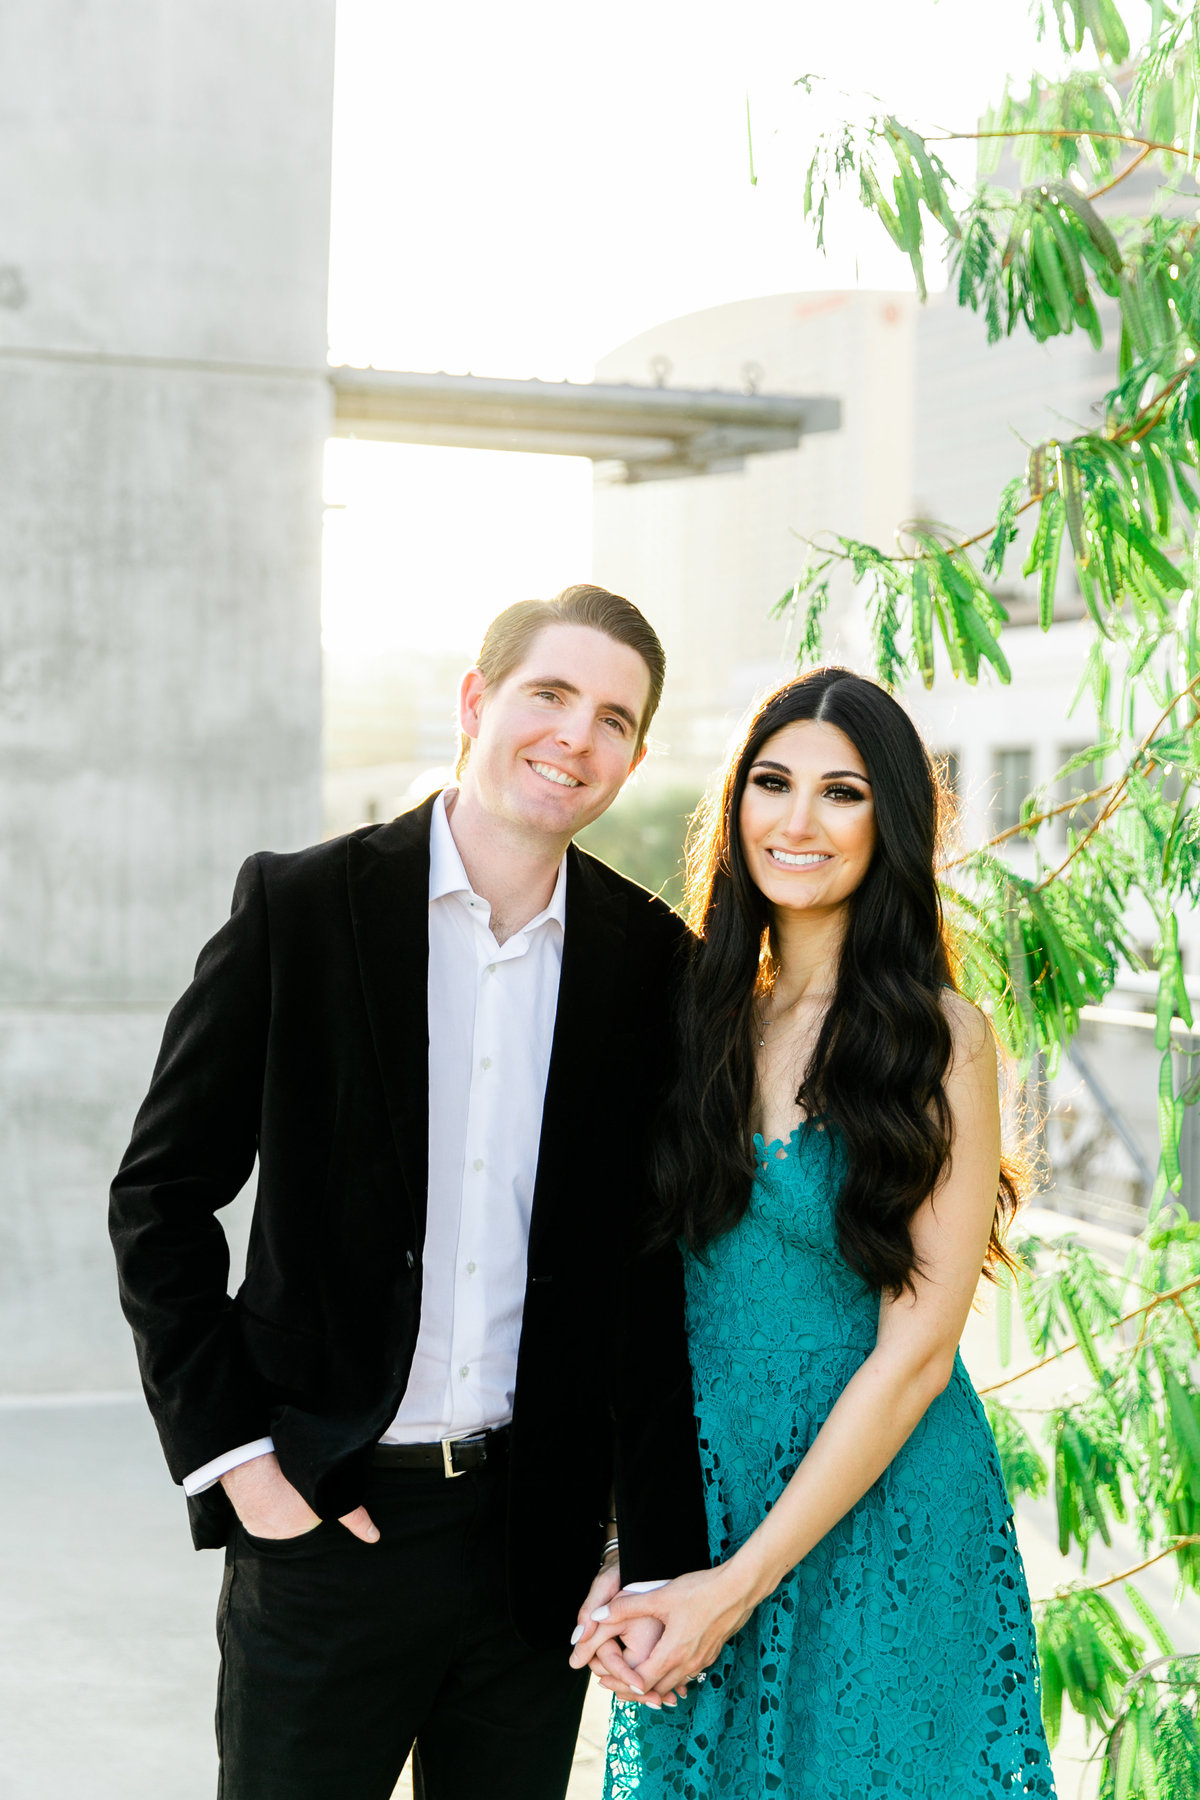 Karlie Colleen Photography - Arizona Engagement City Shoot - Kim & Tim-191